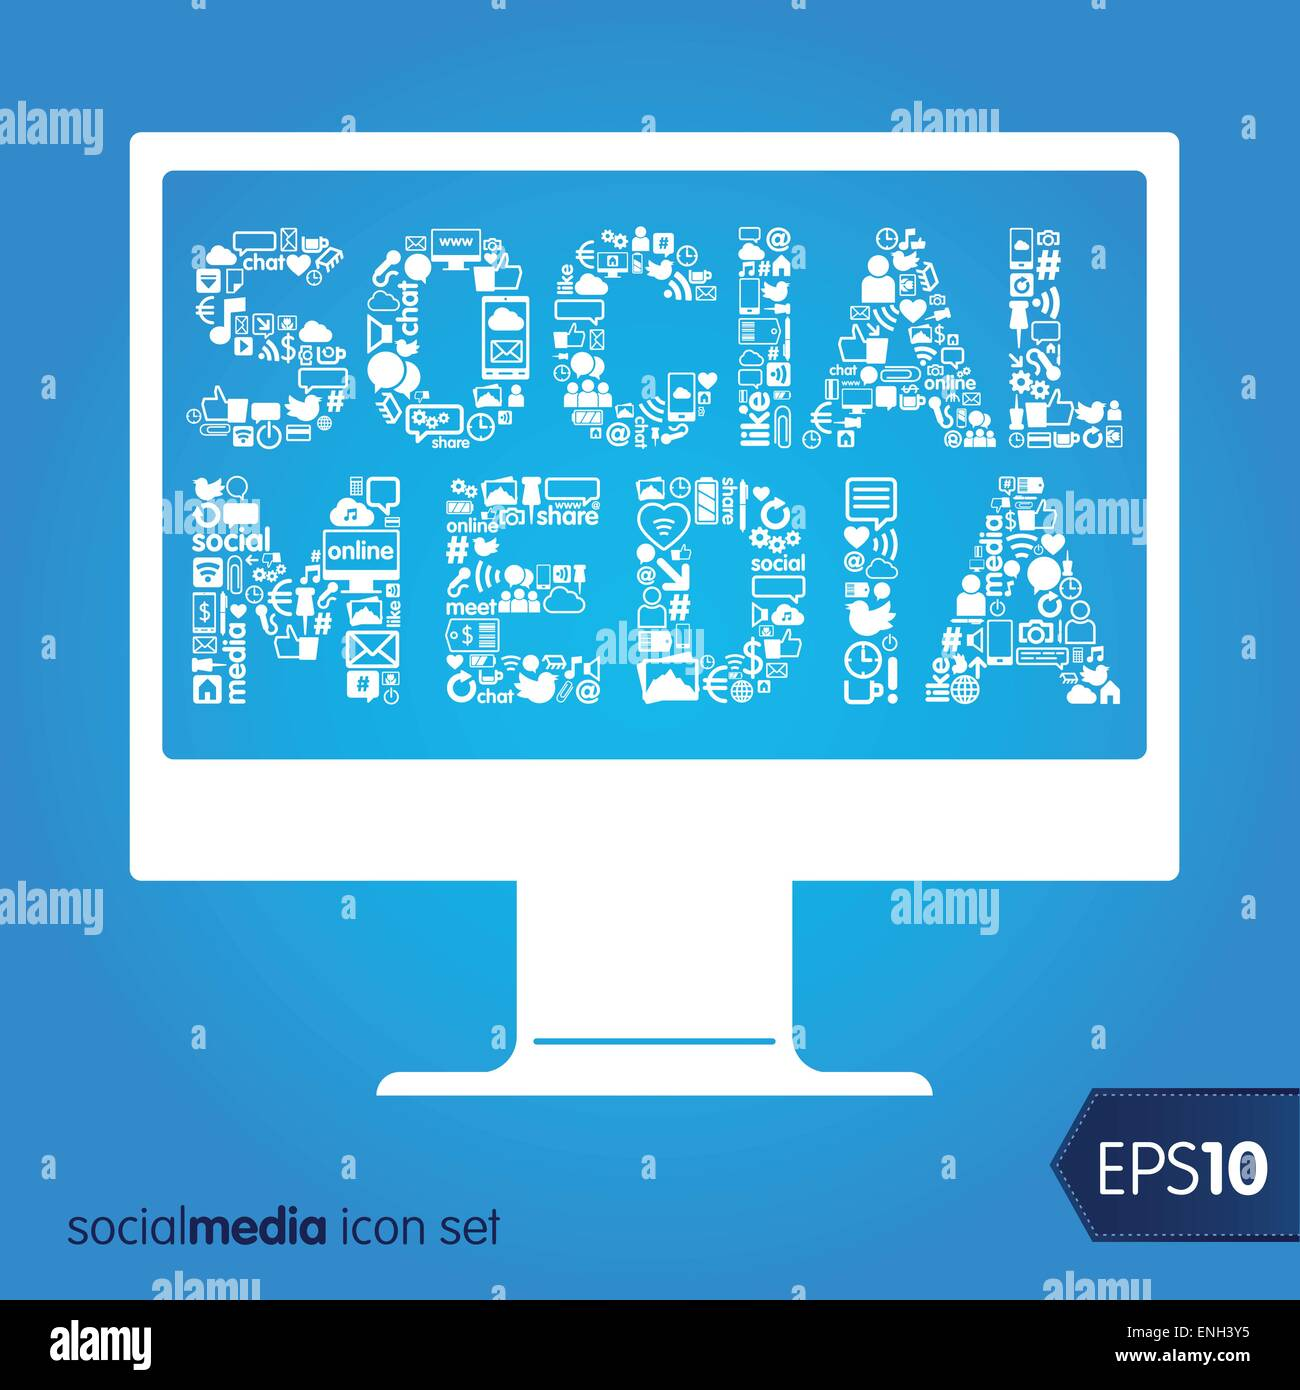 social media vector items concept image - Stock Image